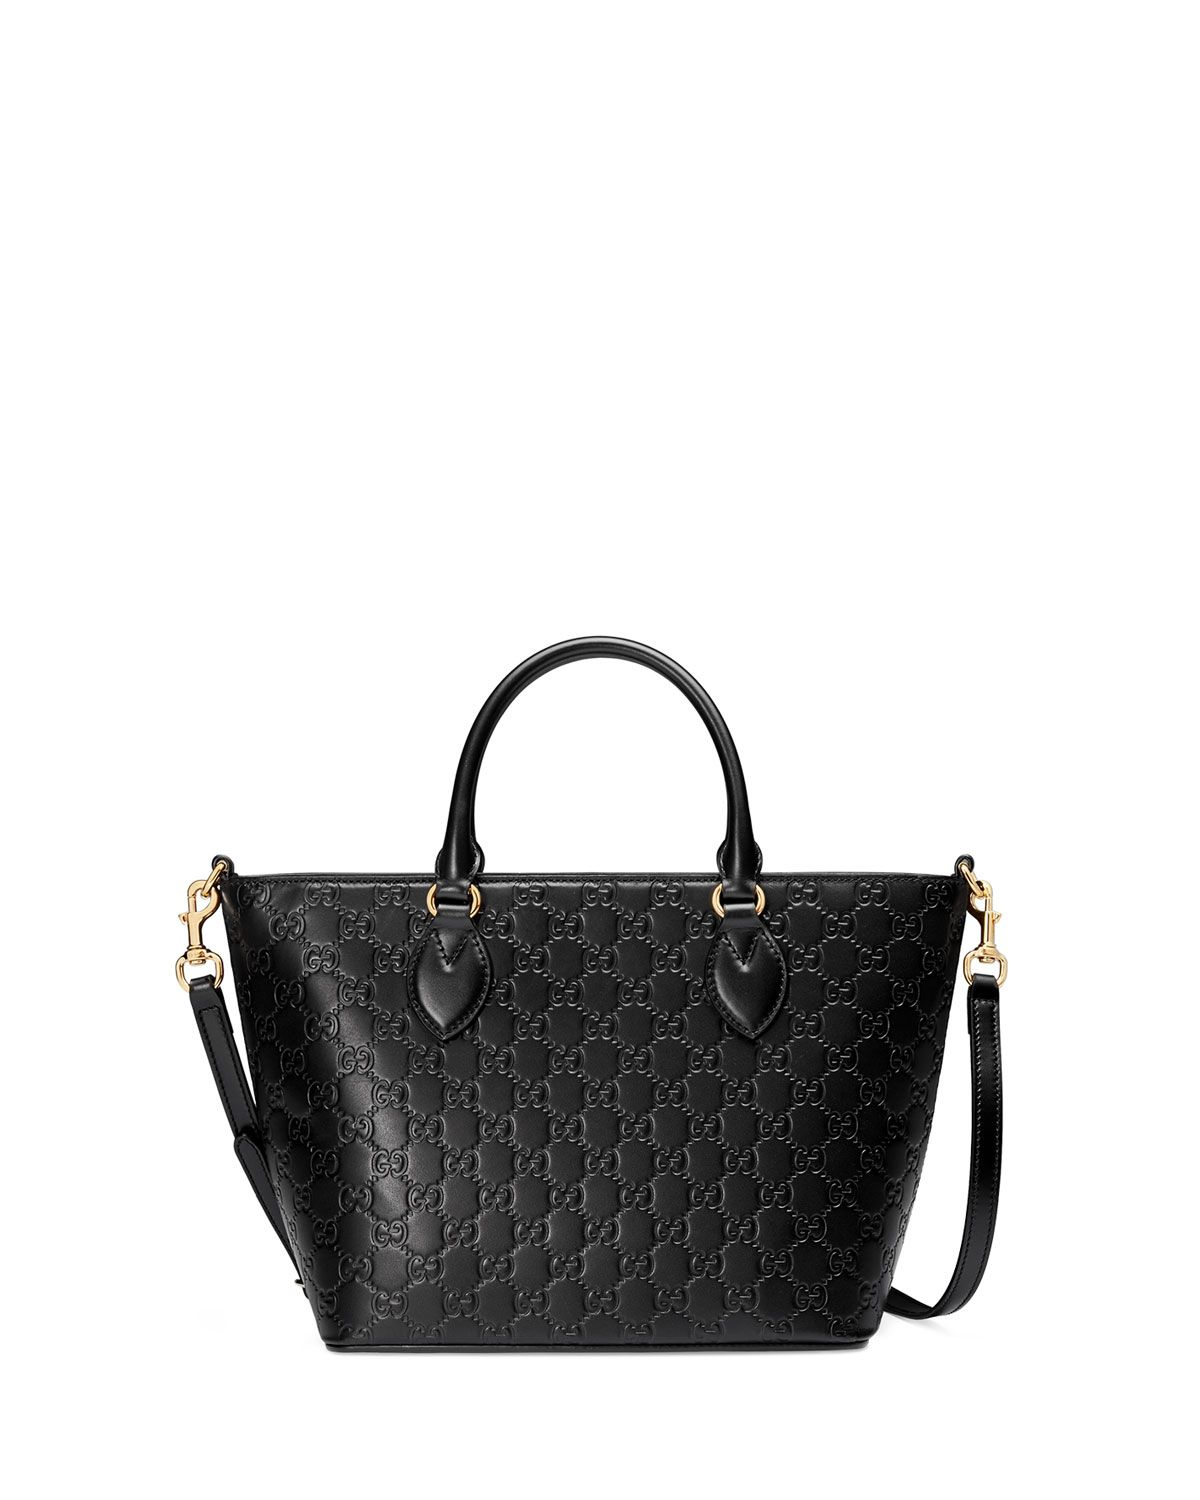 Gucci Guccissima leather tote bag with golden hardware. Rolled top ...